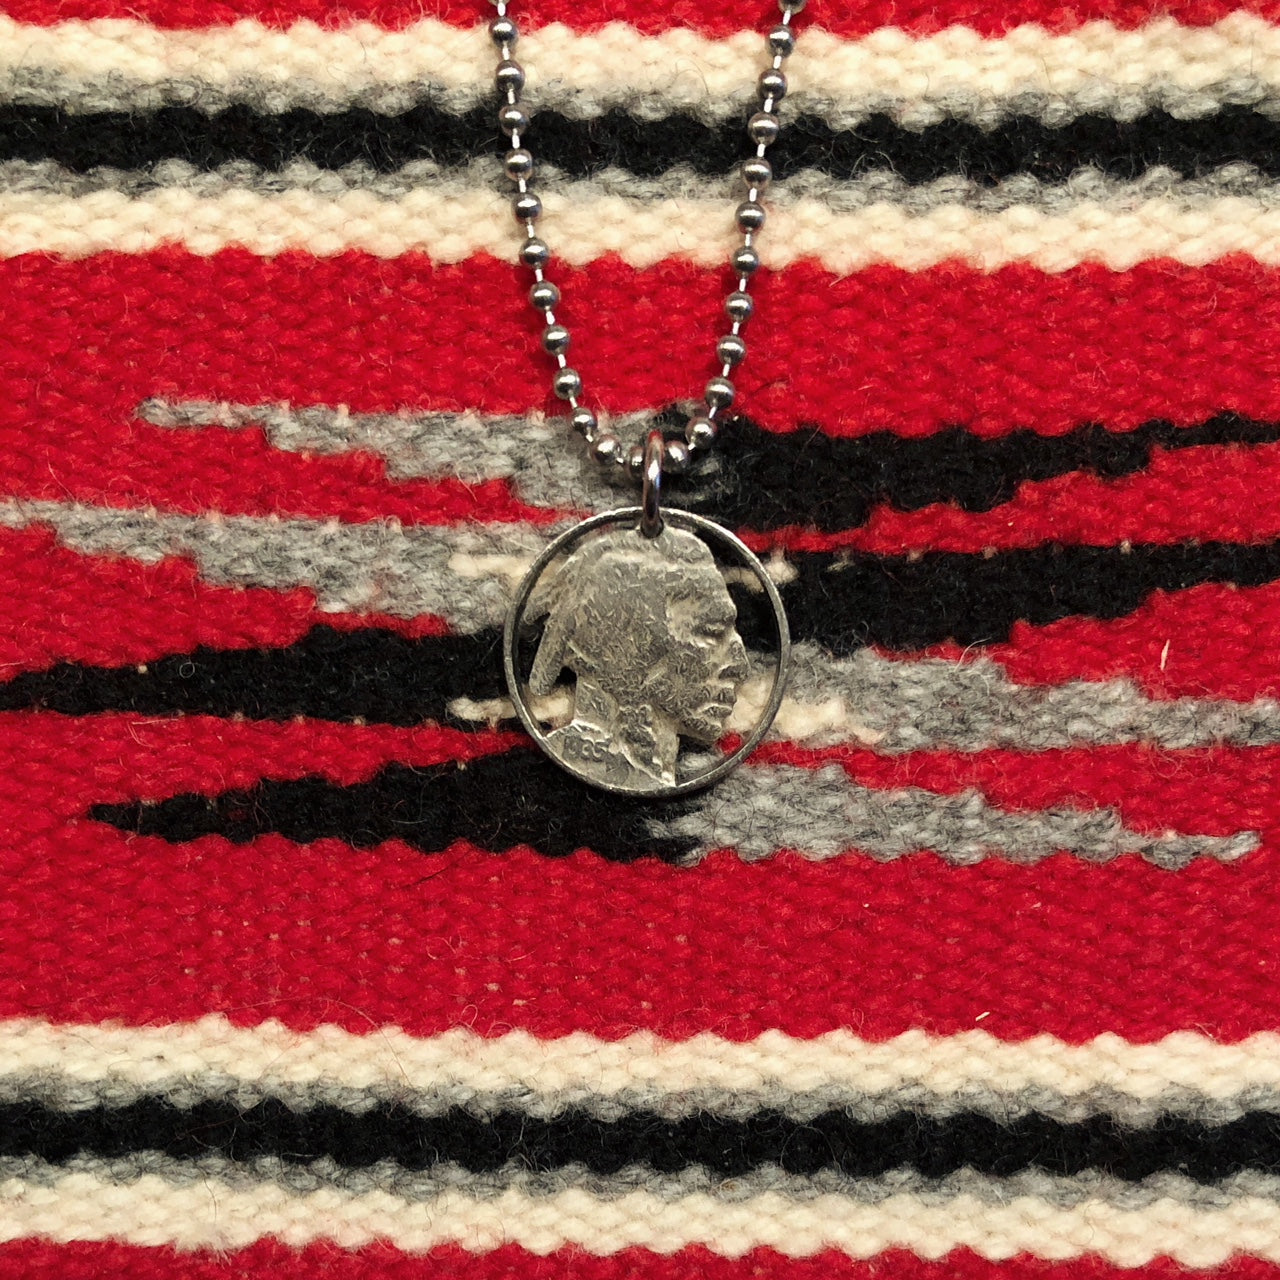 A TSY Hand-Cut Indian Head Nickel Coin Pendant Necklace, Jewelry, FINAL SALE!